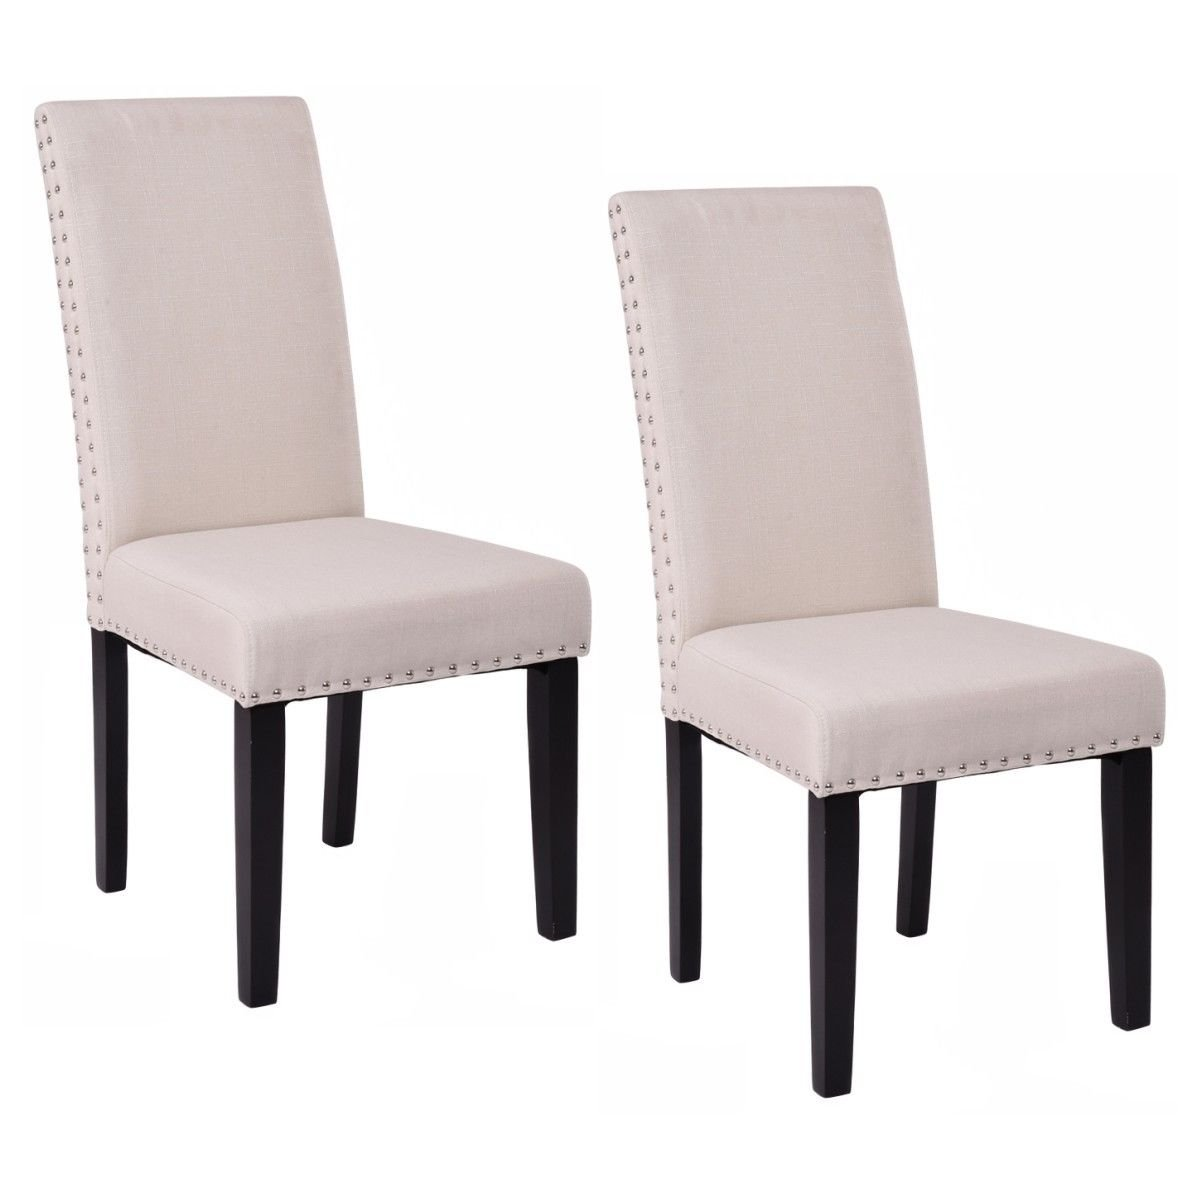 e73c0320a9ad COLIBROX--Set of 2 Dining Chairs Fabric Upholstered Armless Accent Home  Kitchen Furniture. accent chairs for dining room table. accent dining chairs  with ...